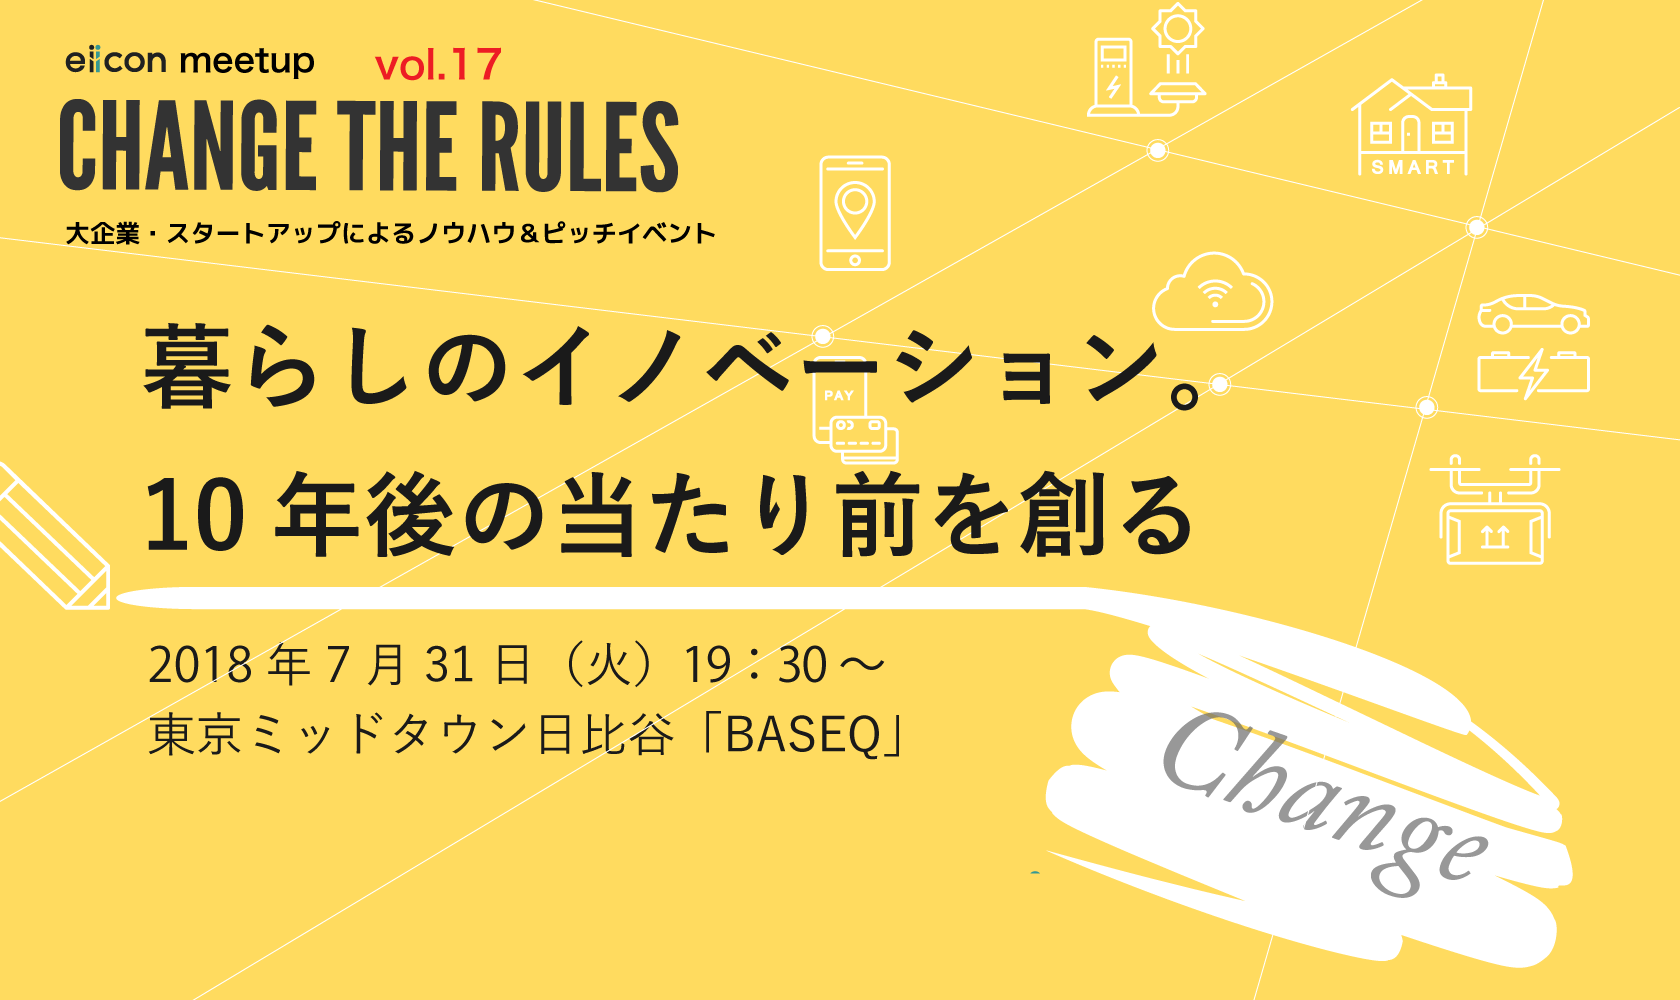 CHANGE THE RULES	eiicon meet up!! vol.17「暮らしのイノベーション。10年後の当たり前を創る」